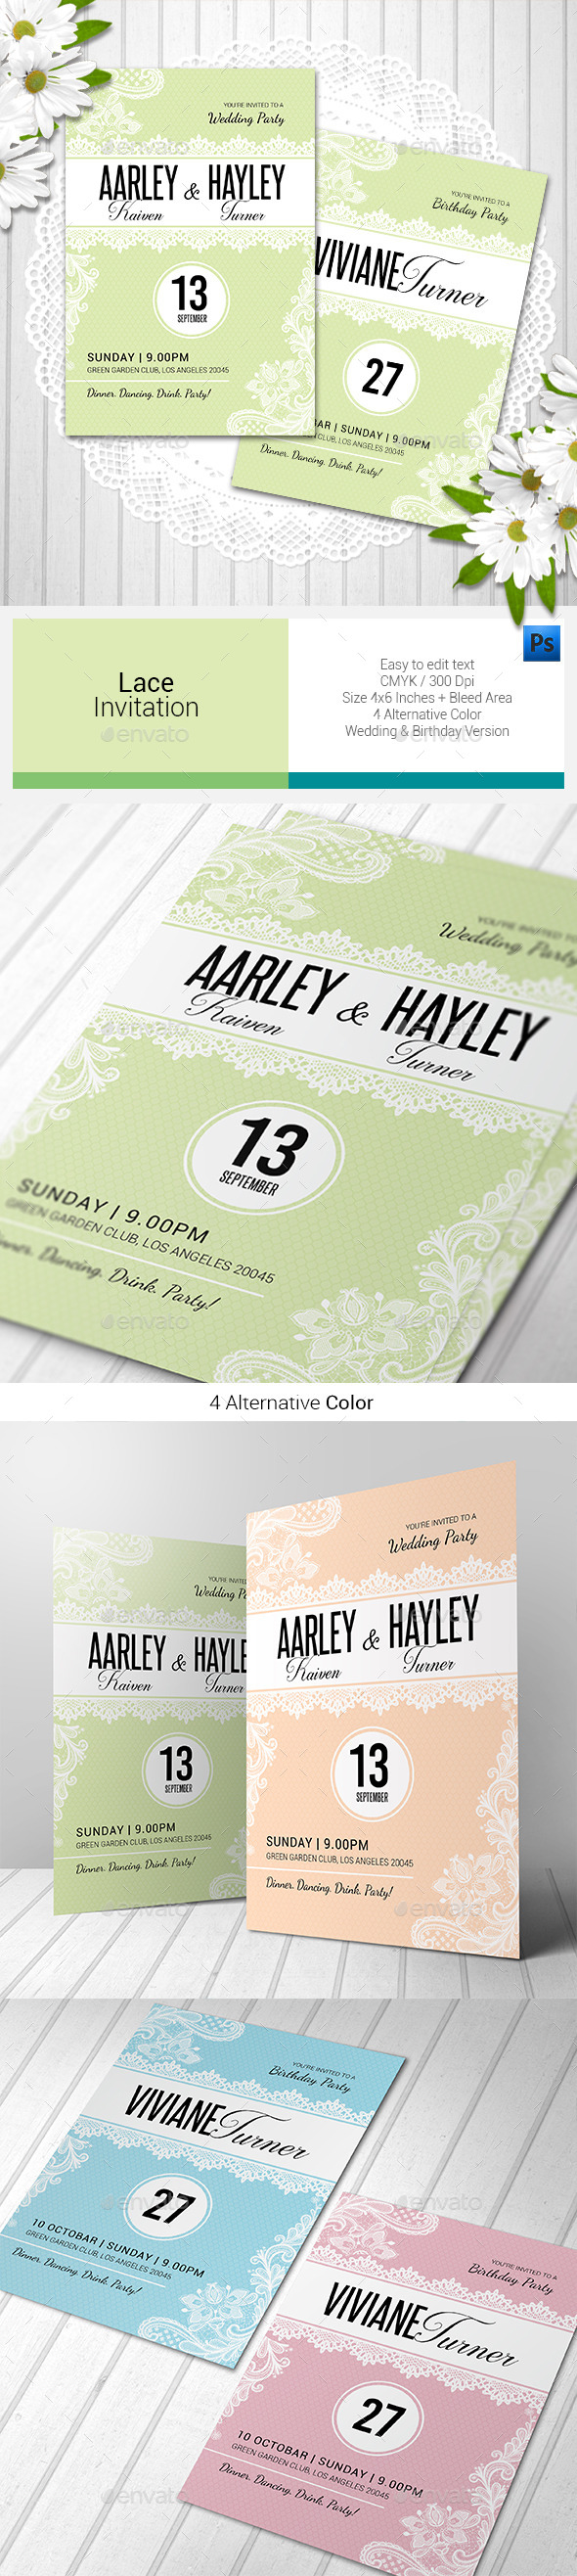 Lace Invitation - Invitations Cards & Invites